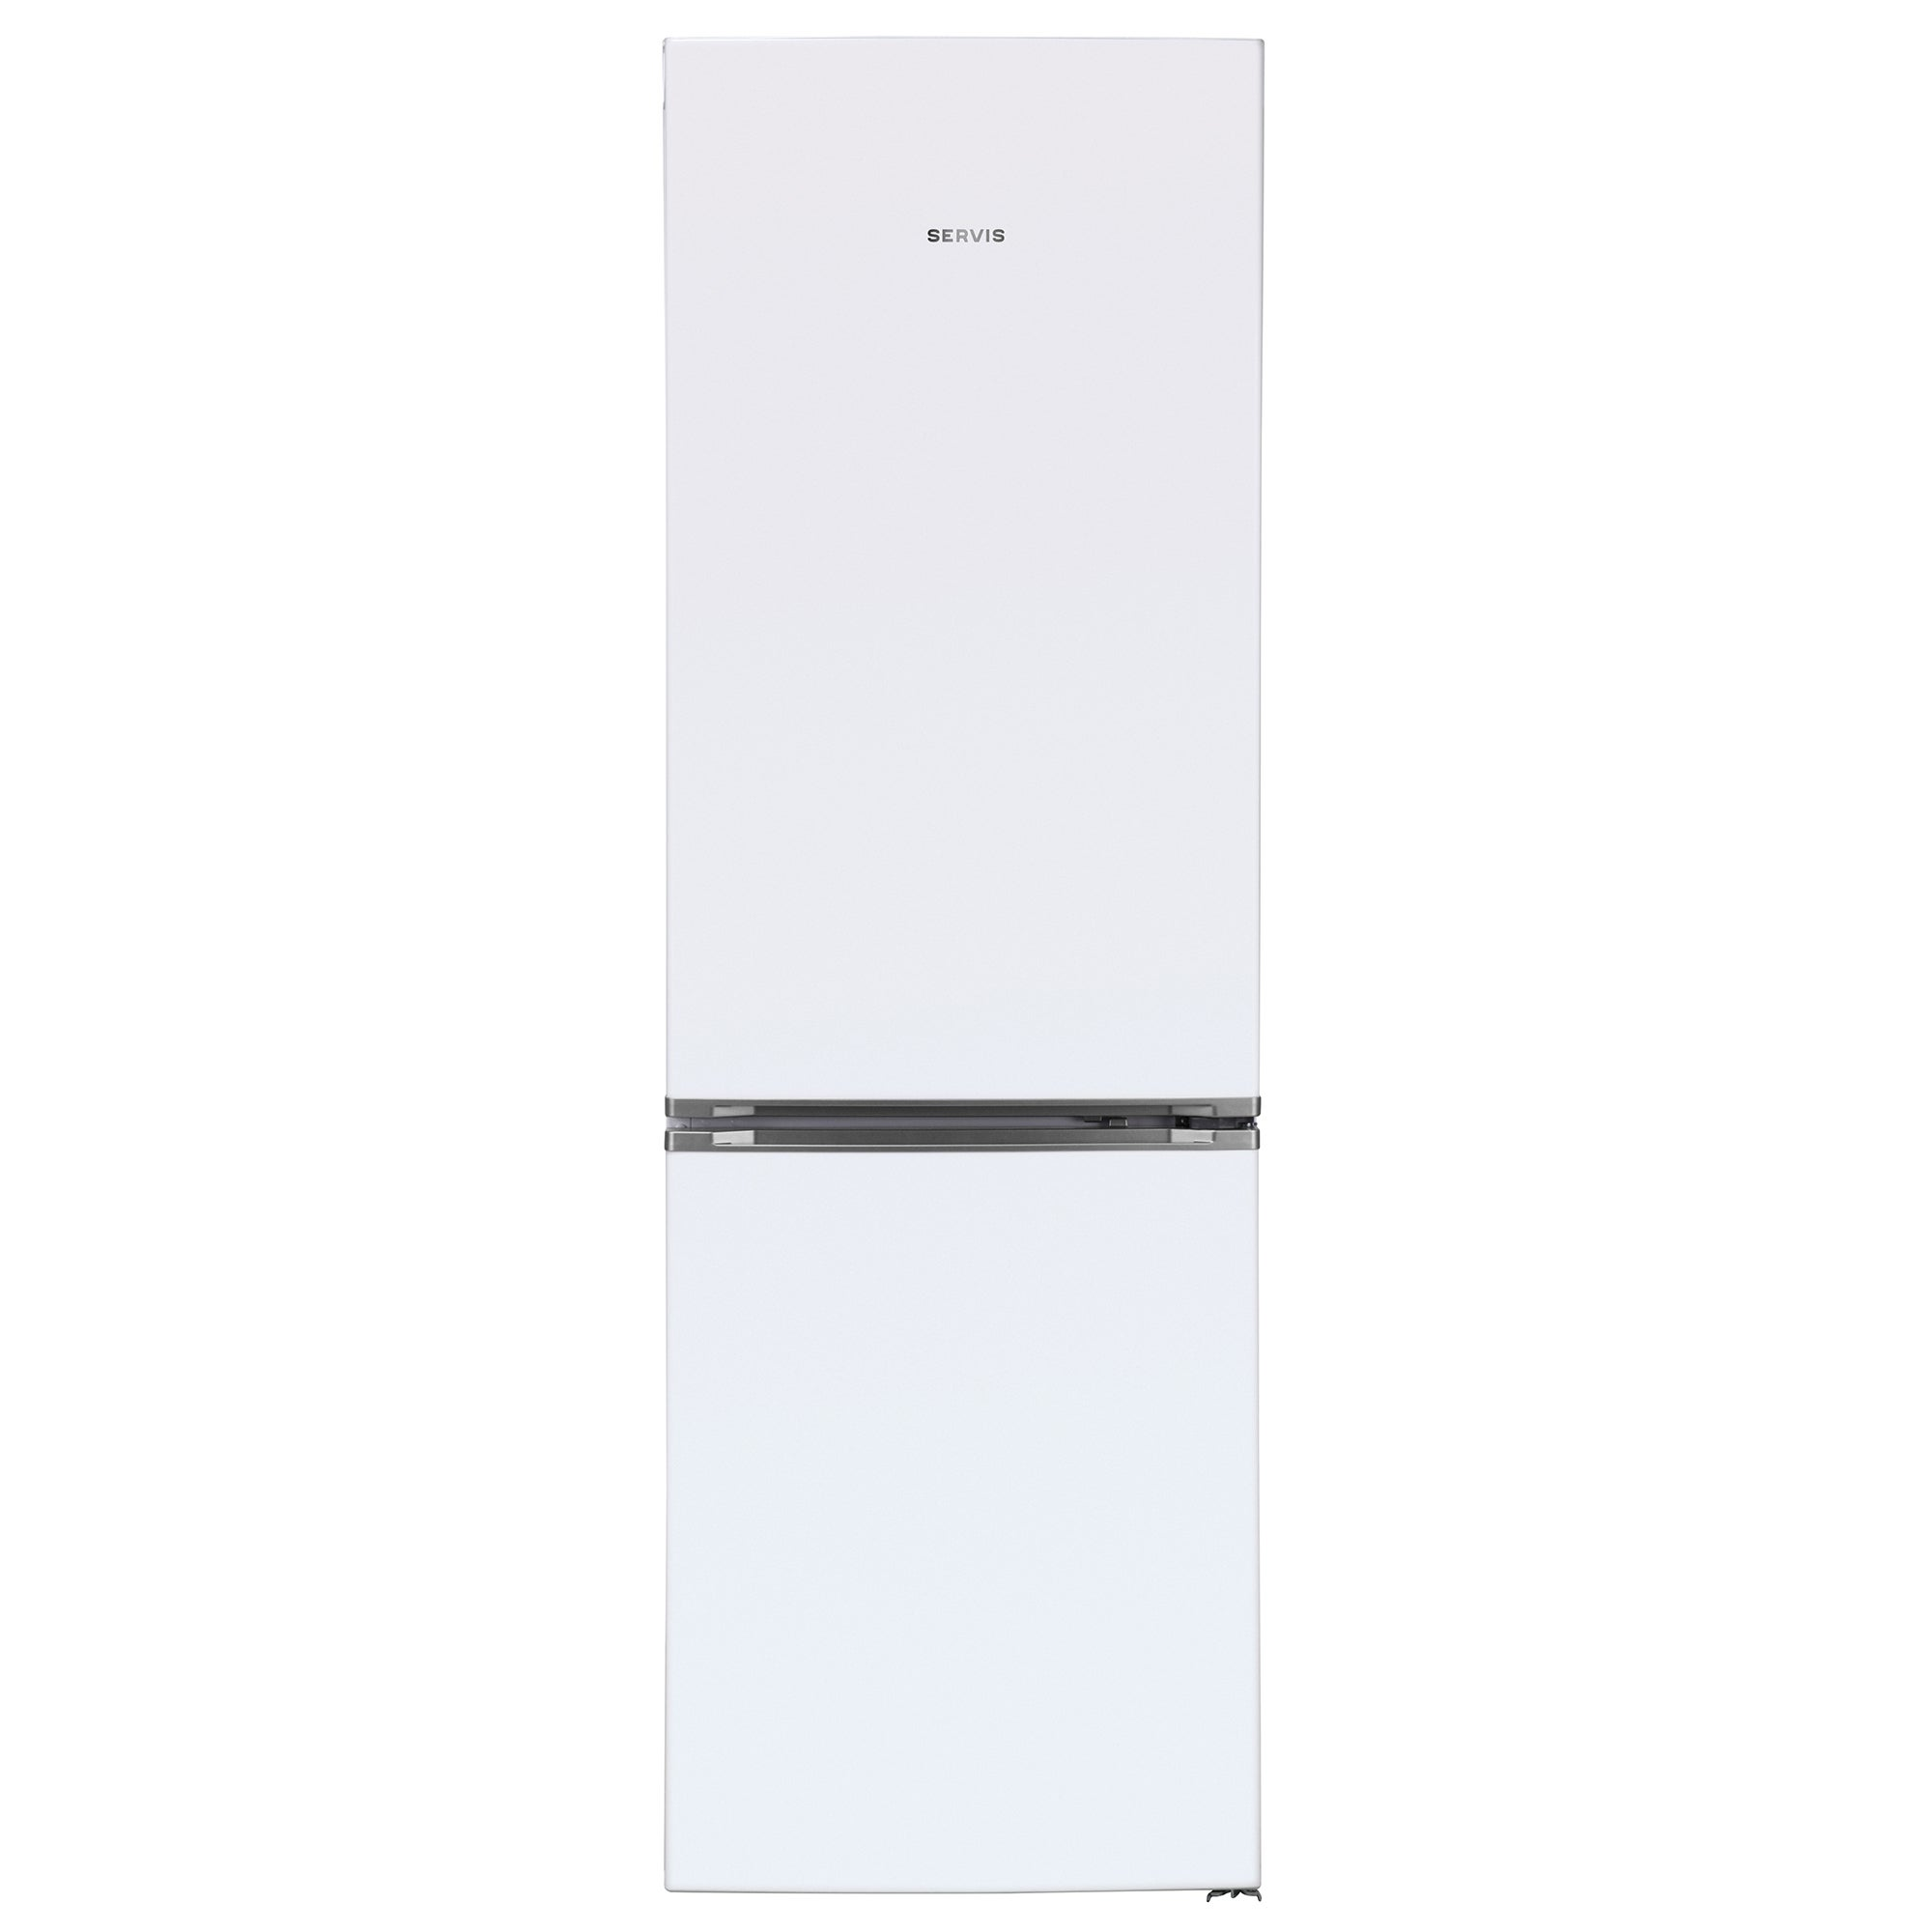 Servis CF60185NFW White Combi Fridge Freezer White